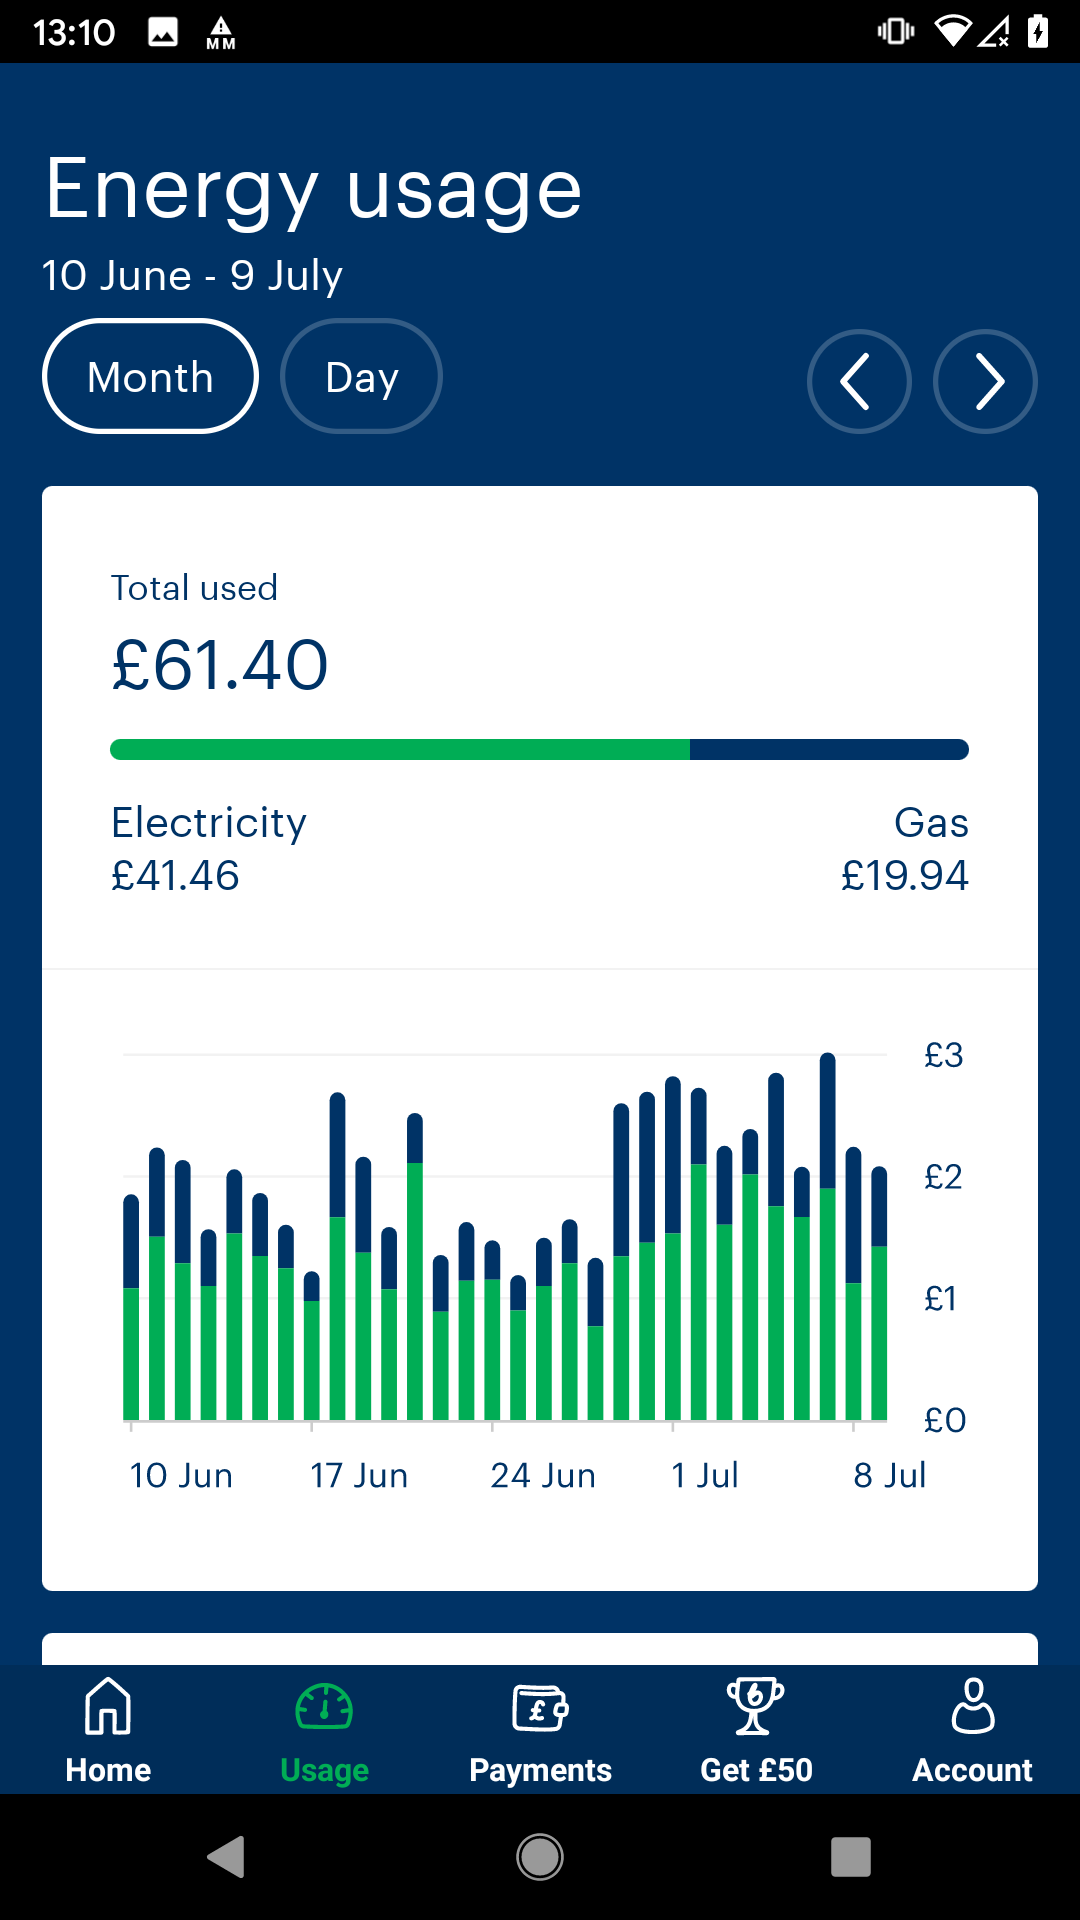 A bar chart showing varying gas and electricity usage costs over a monthly billing period from 10 June to 9 July.